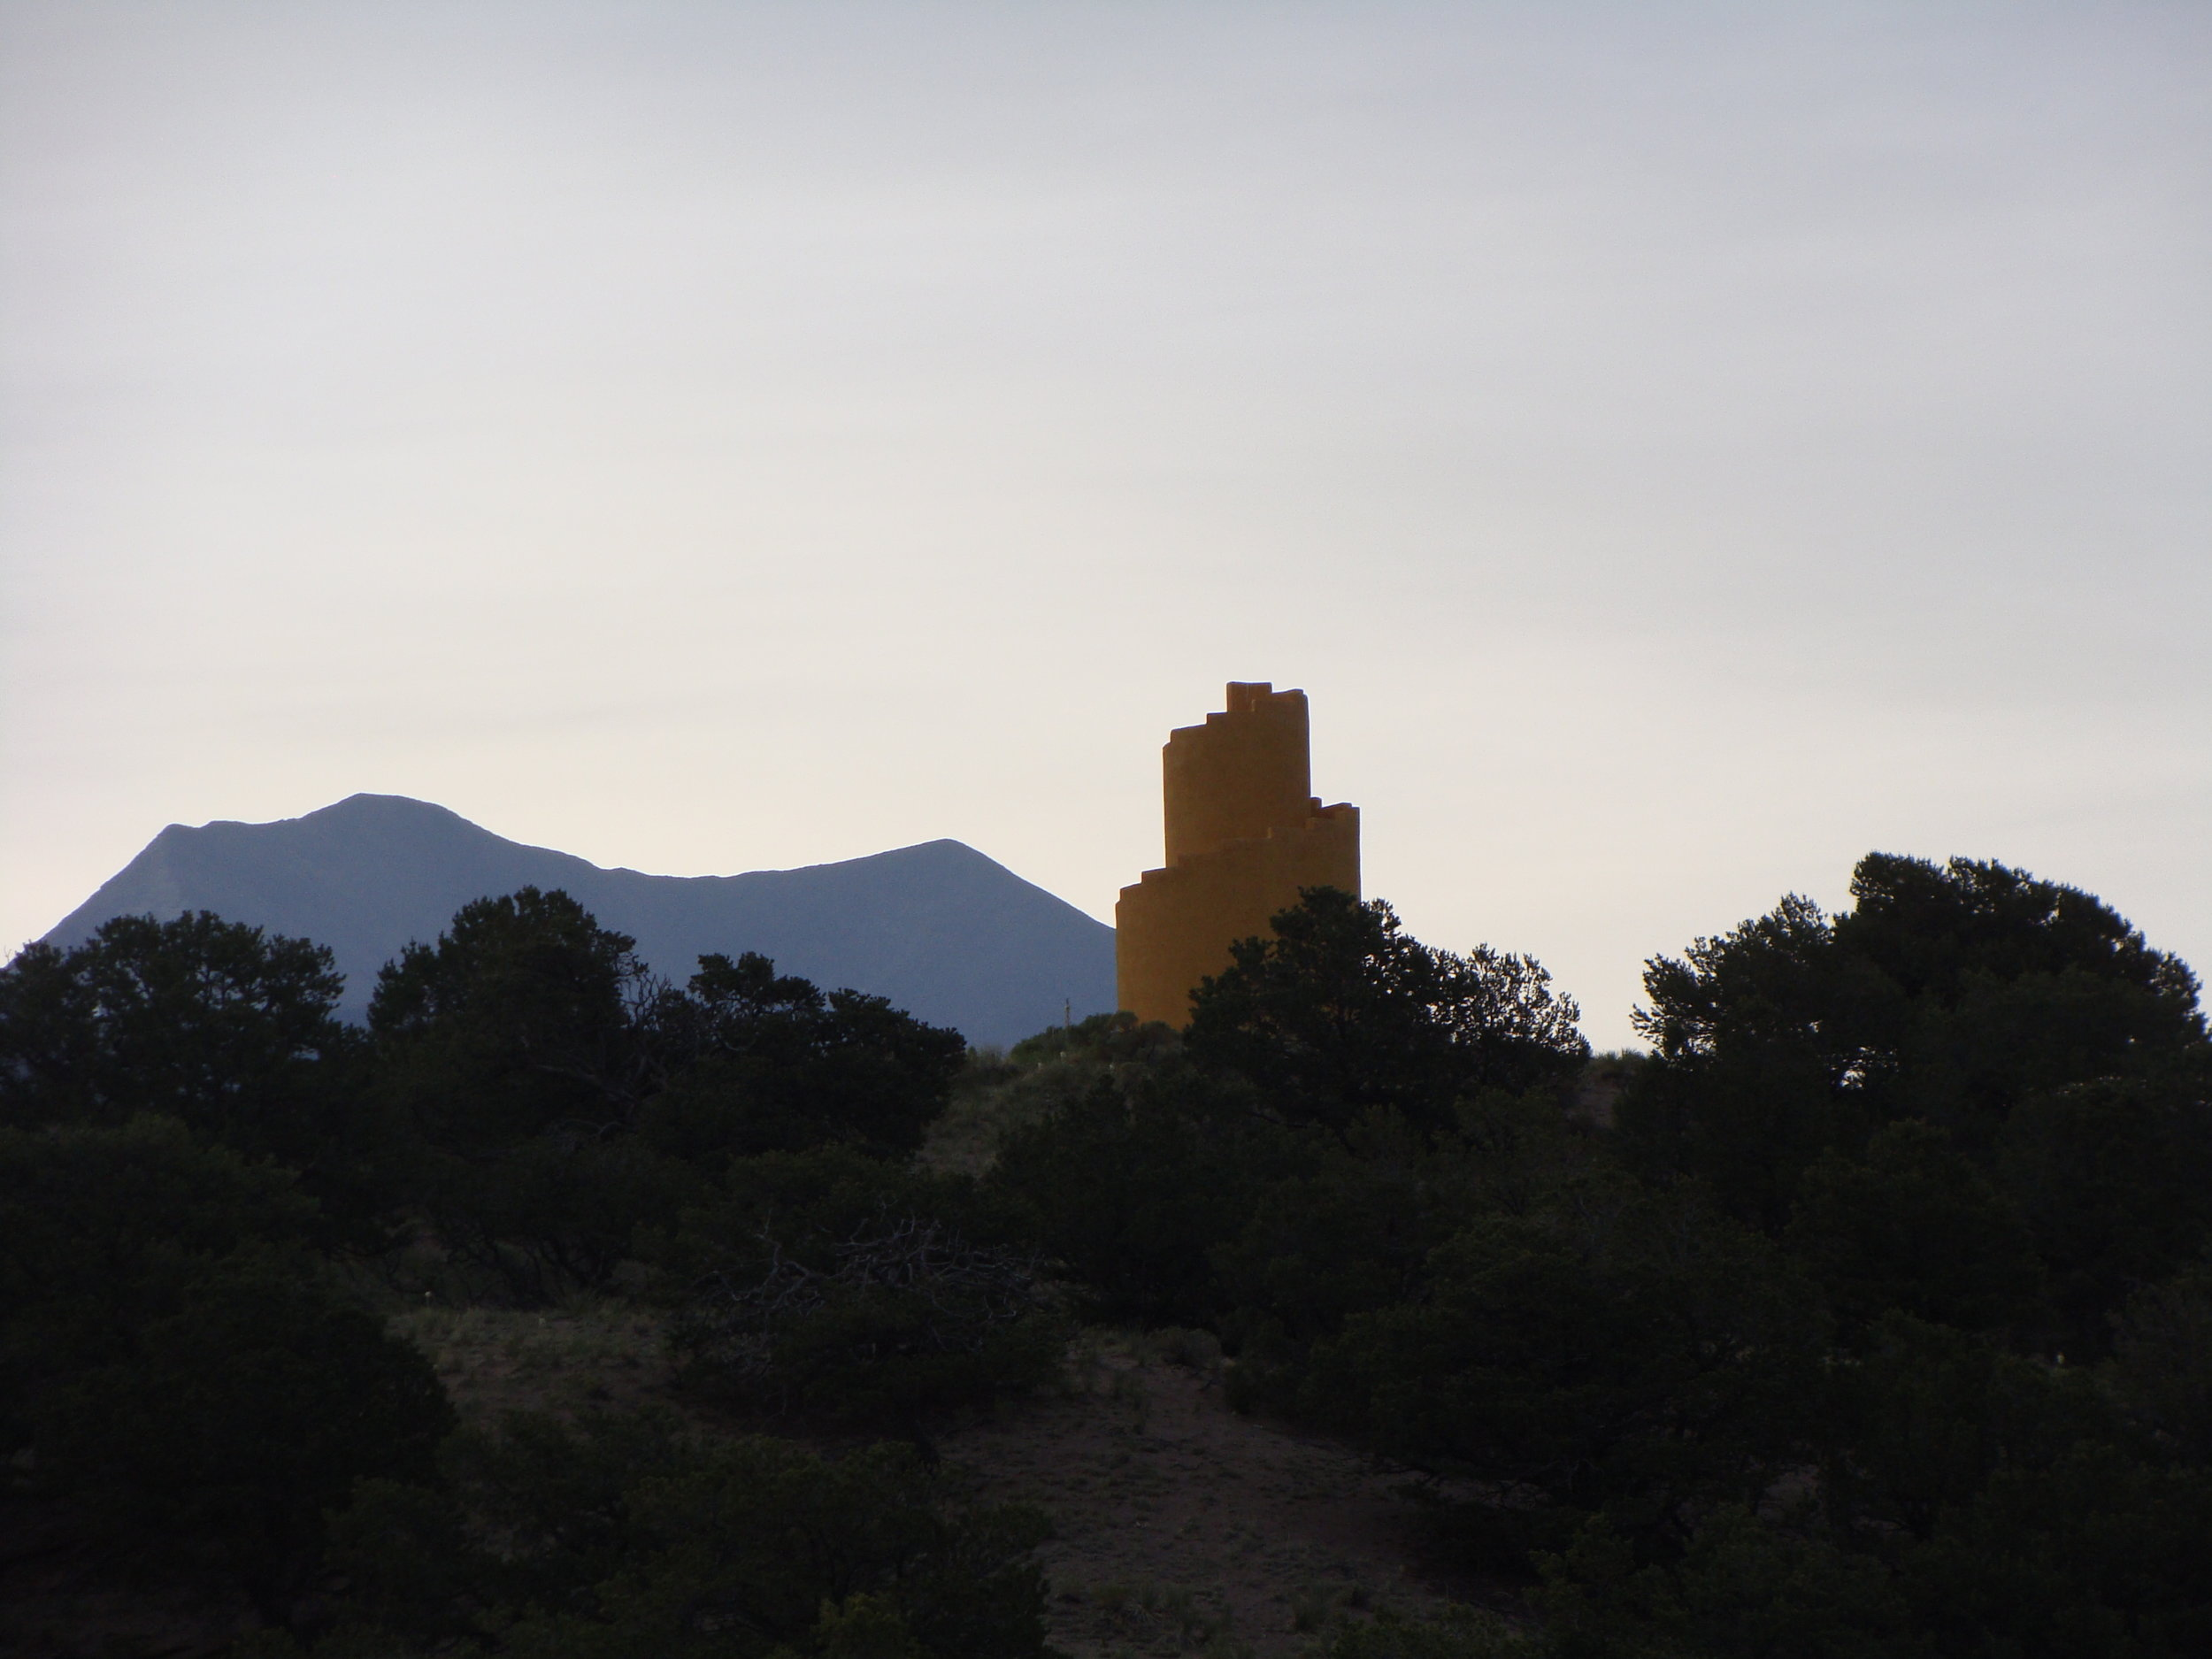 An early morning Solstice hike to the Ziggurat.